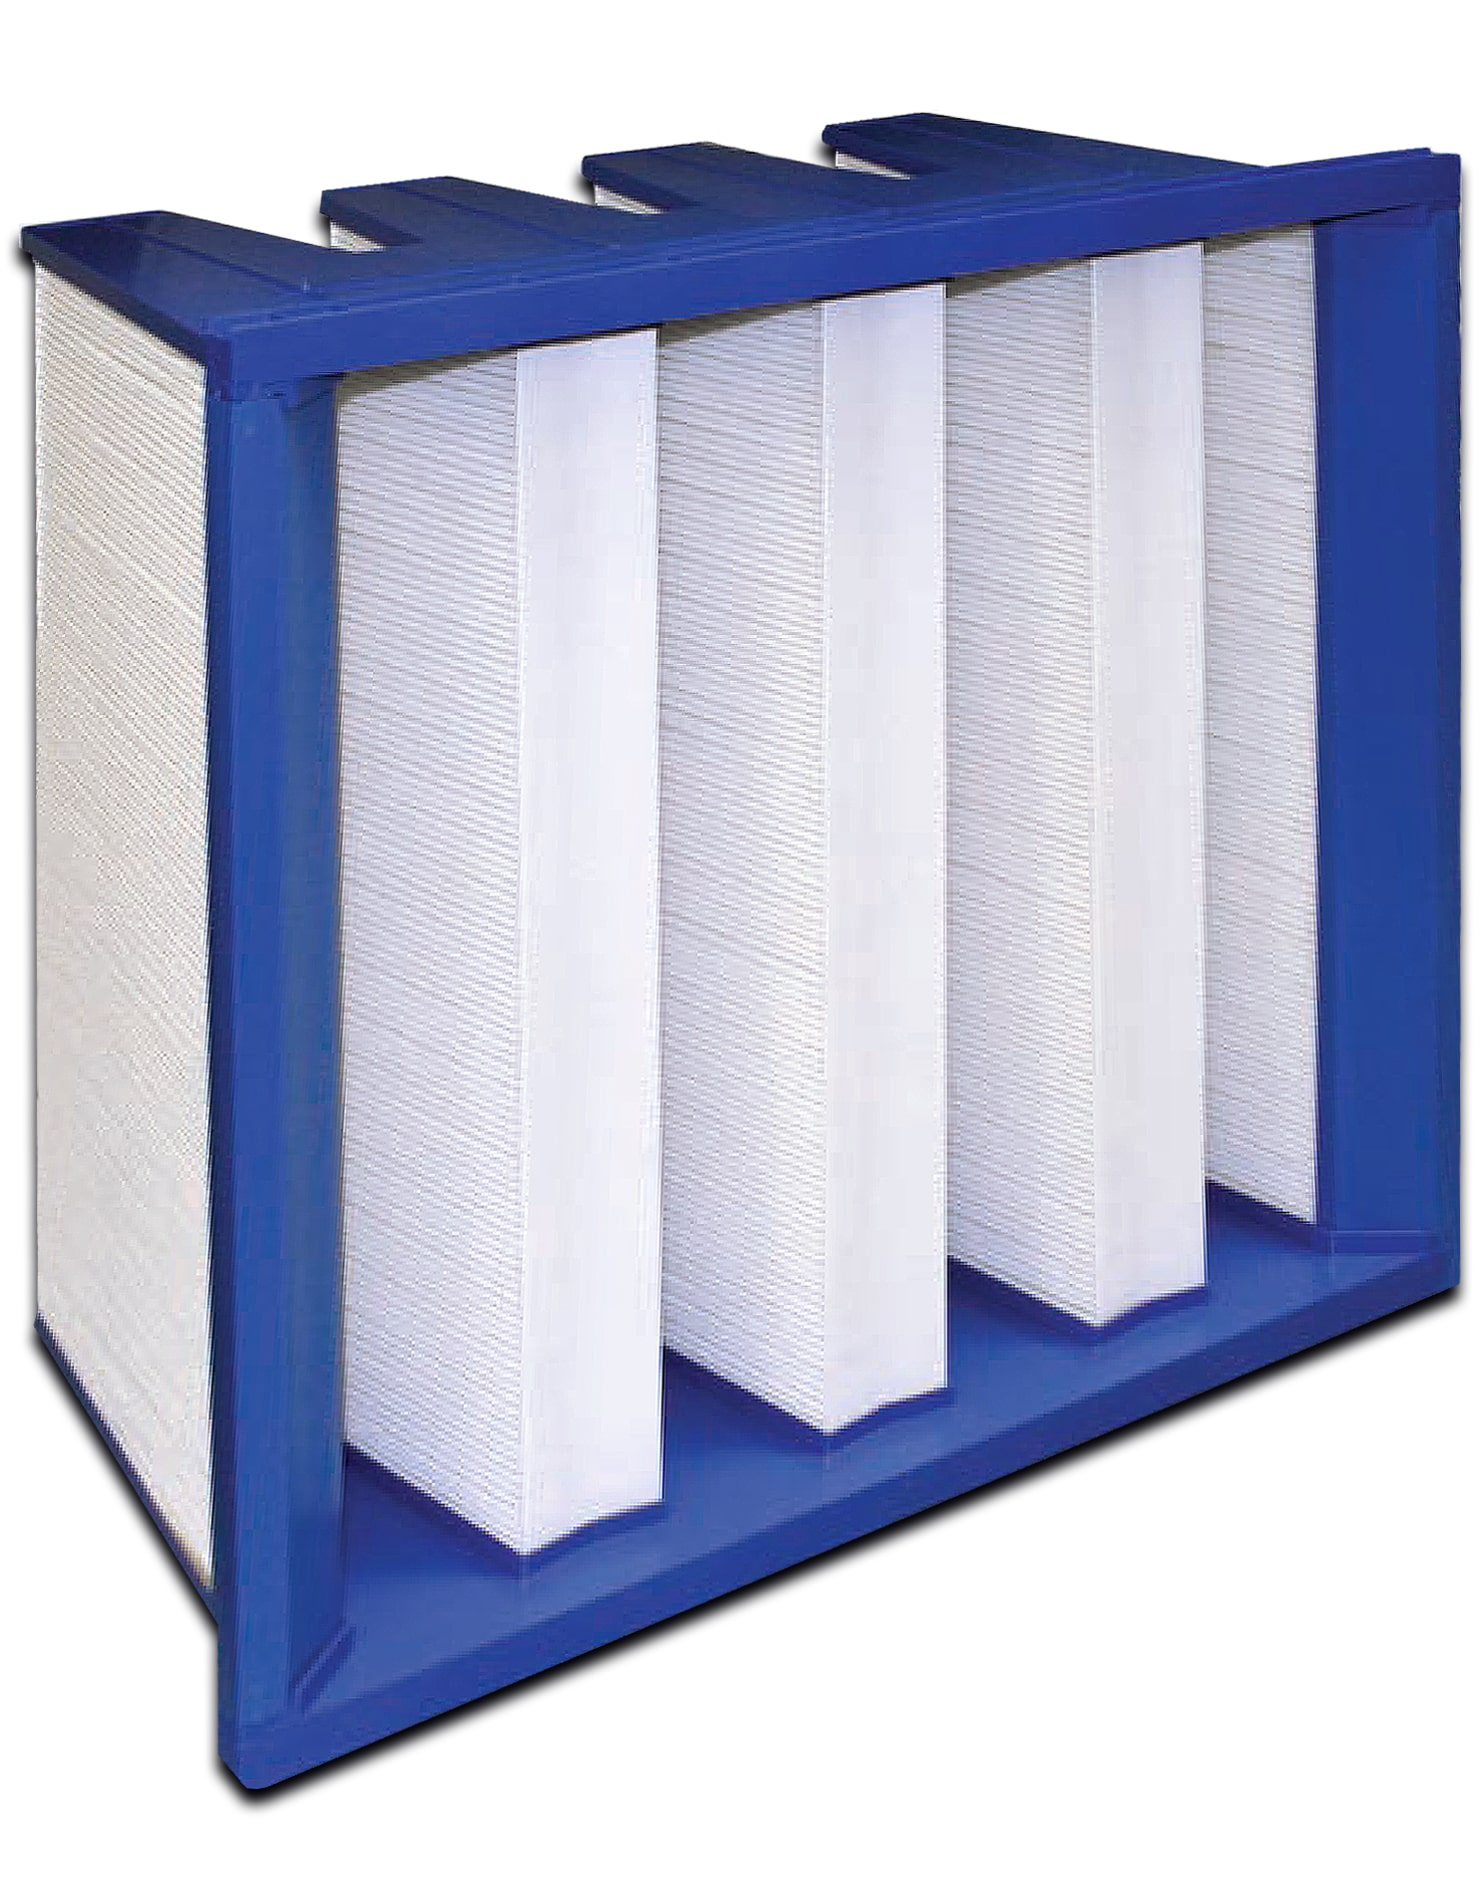 Viledon MV75 V-Bank Air Filter | Industrial Air Filtration Products